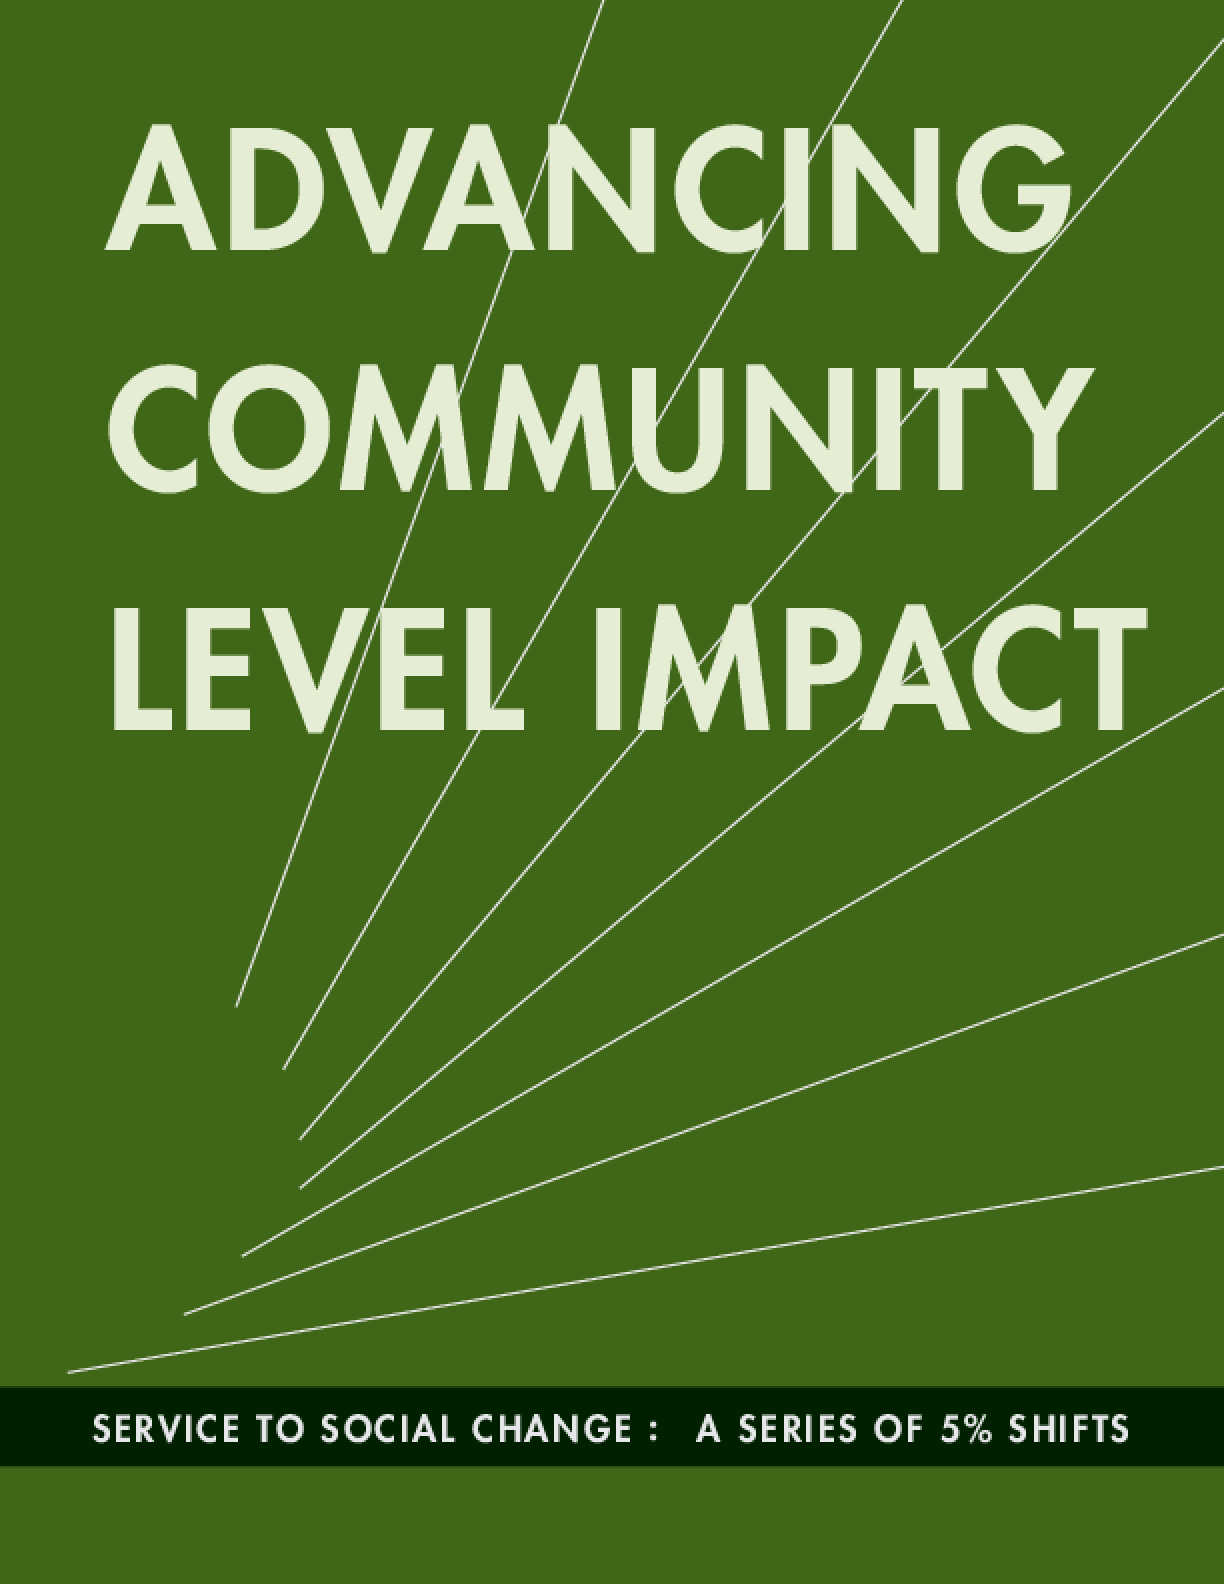 Advancing Community Level Impact: A Series of 5% Shifts